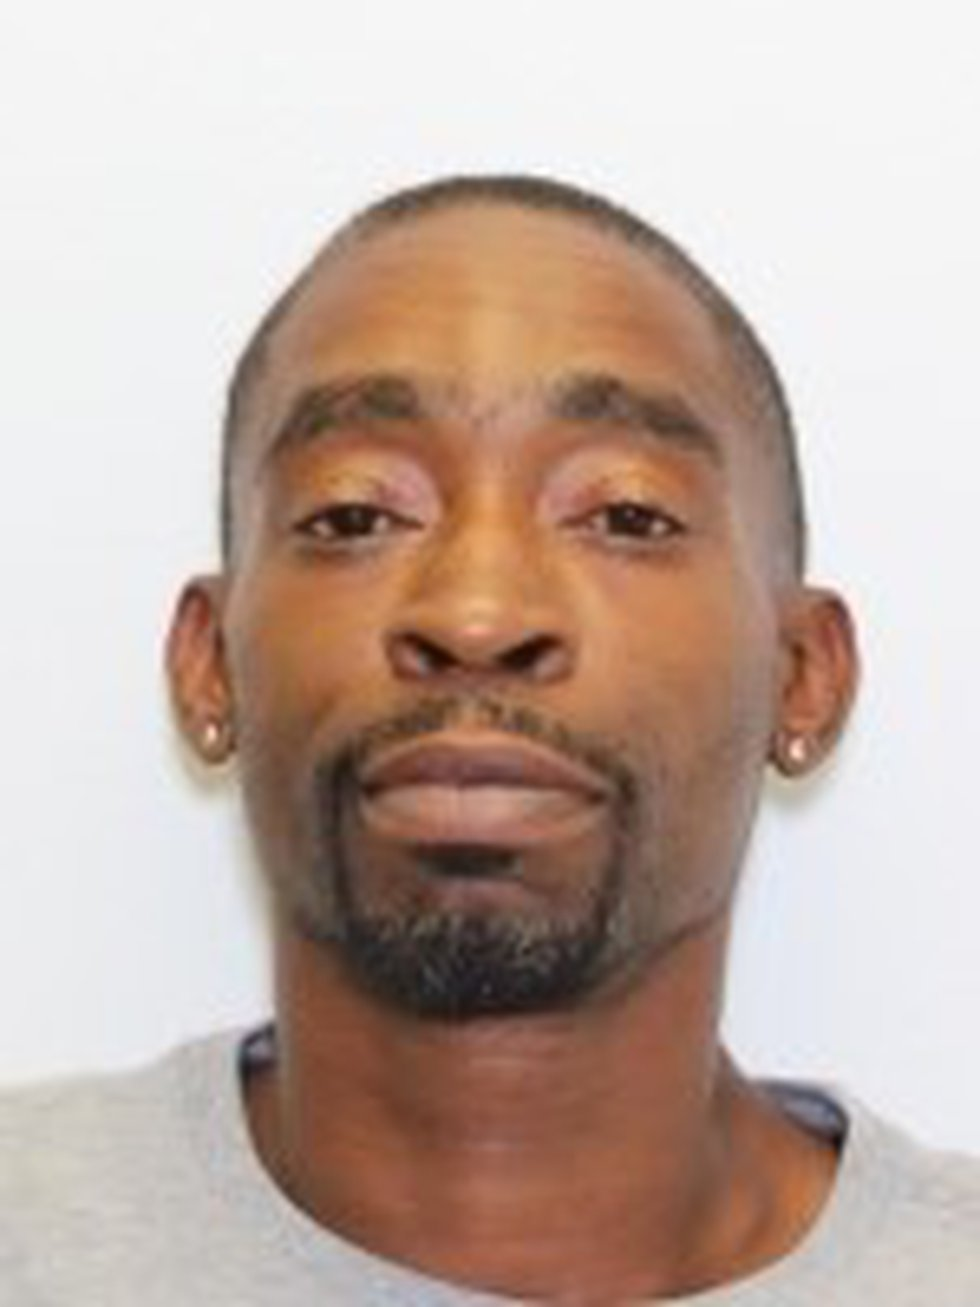 James McCarroll, 41, of Ravenna was arrested for answering an on-line advertisement offering...